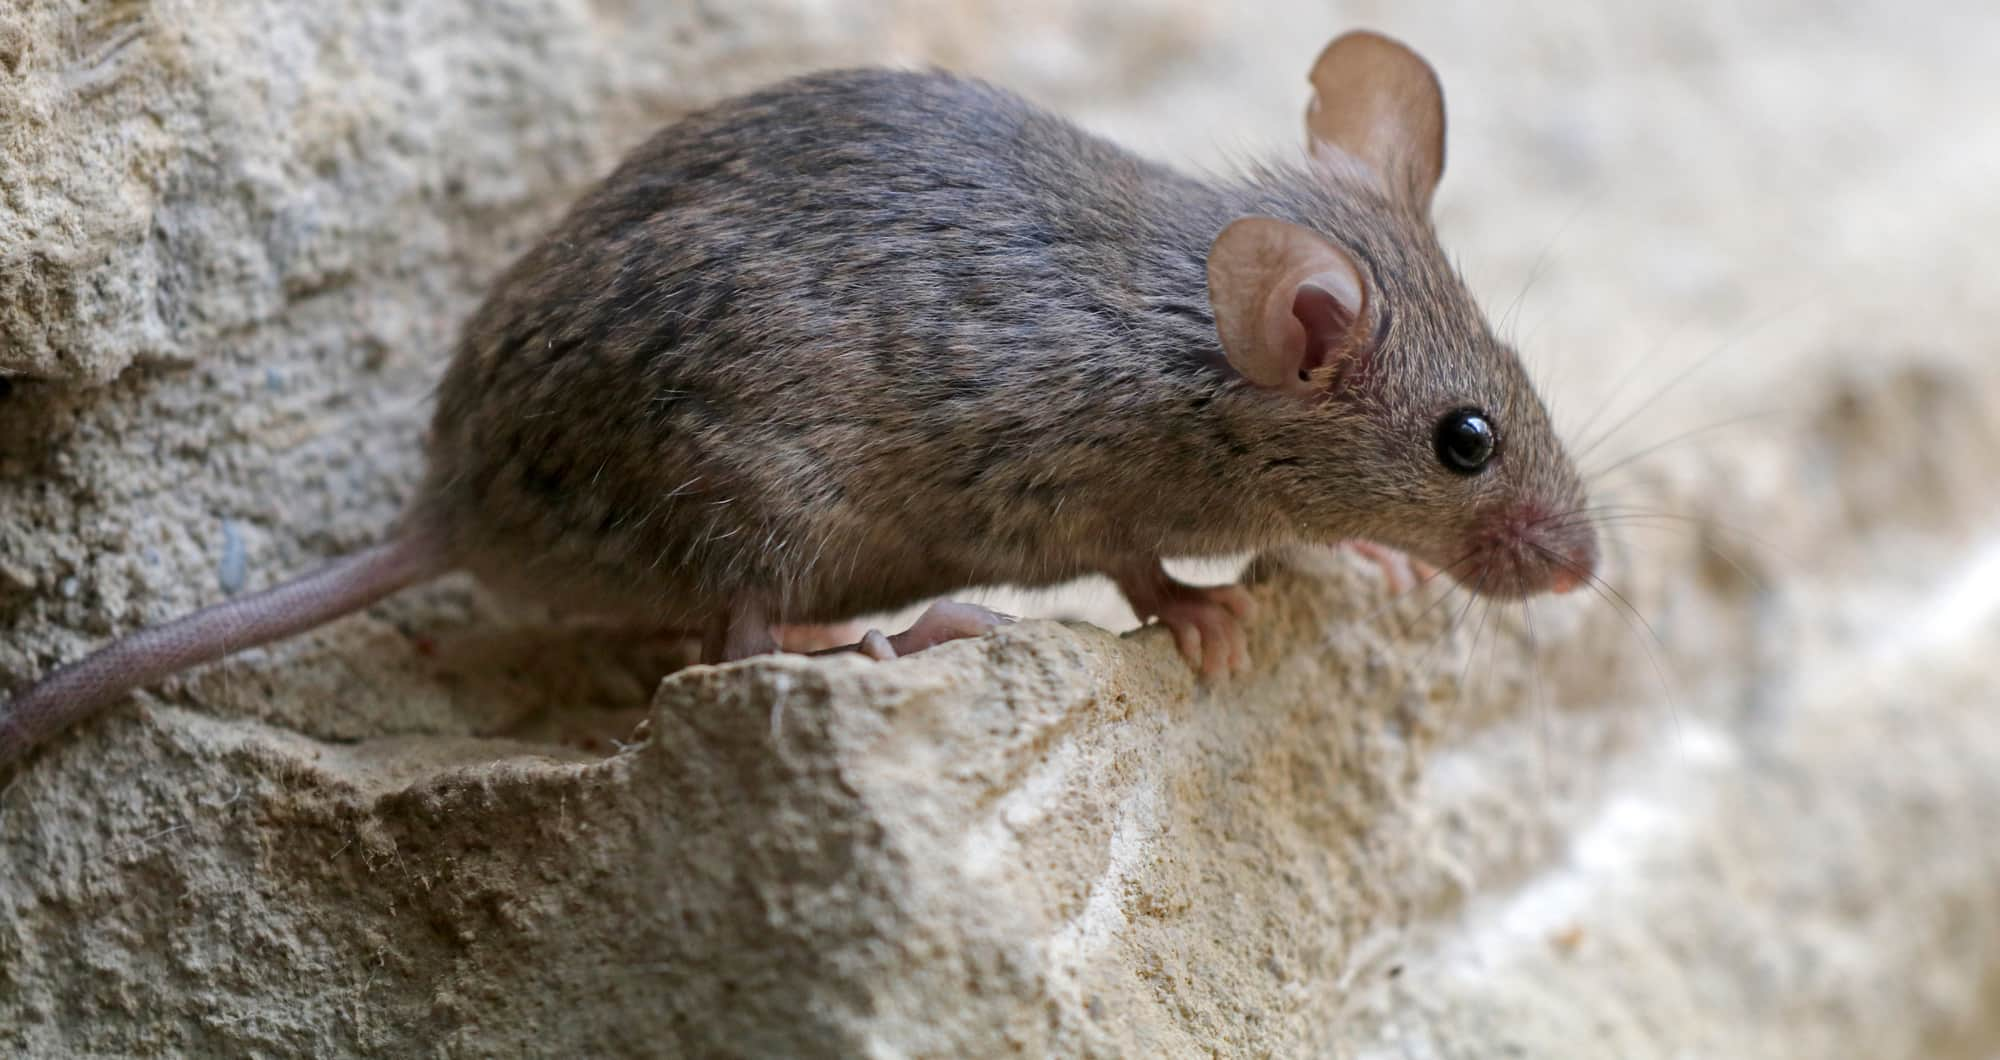 How To Get Rid Of Mice In Walls And Ceilings Earlyexperts